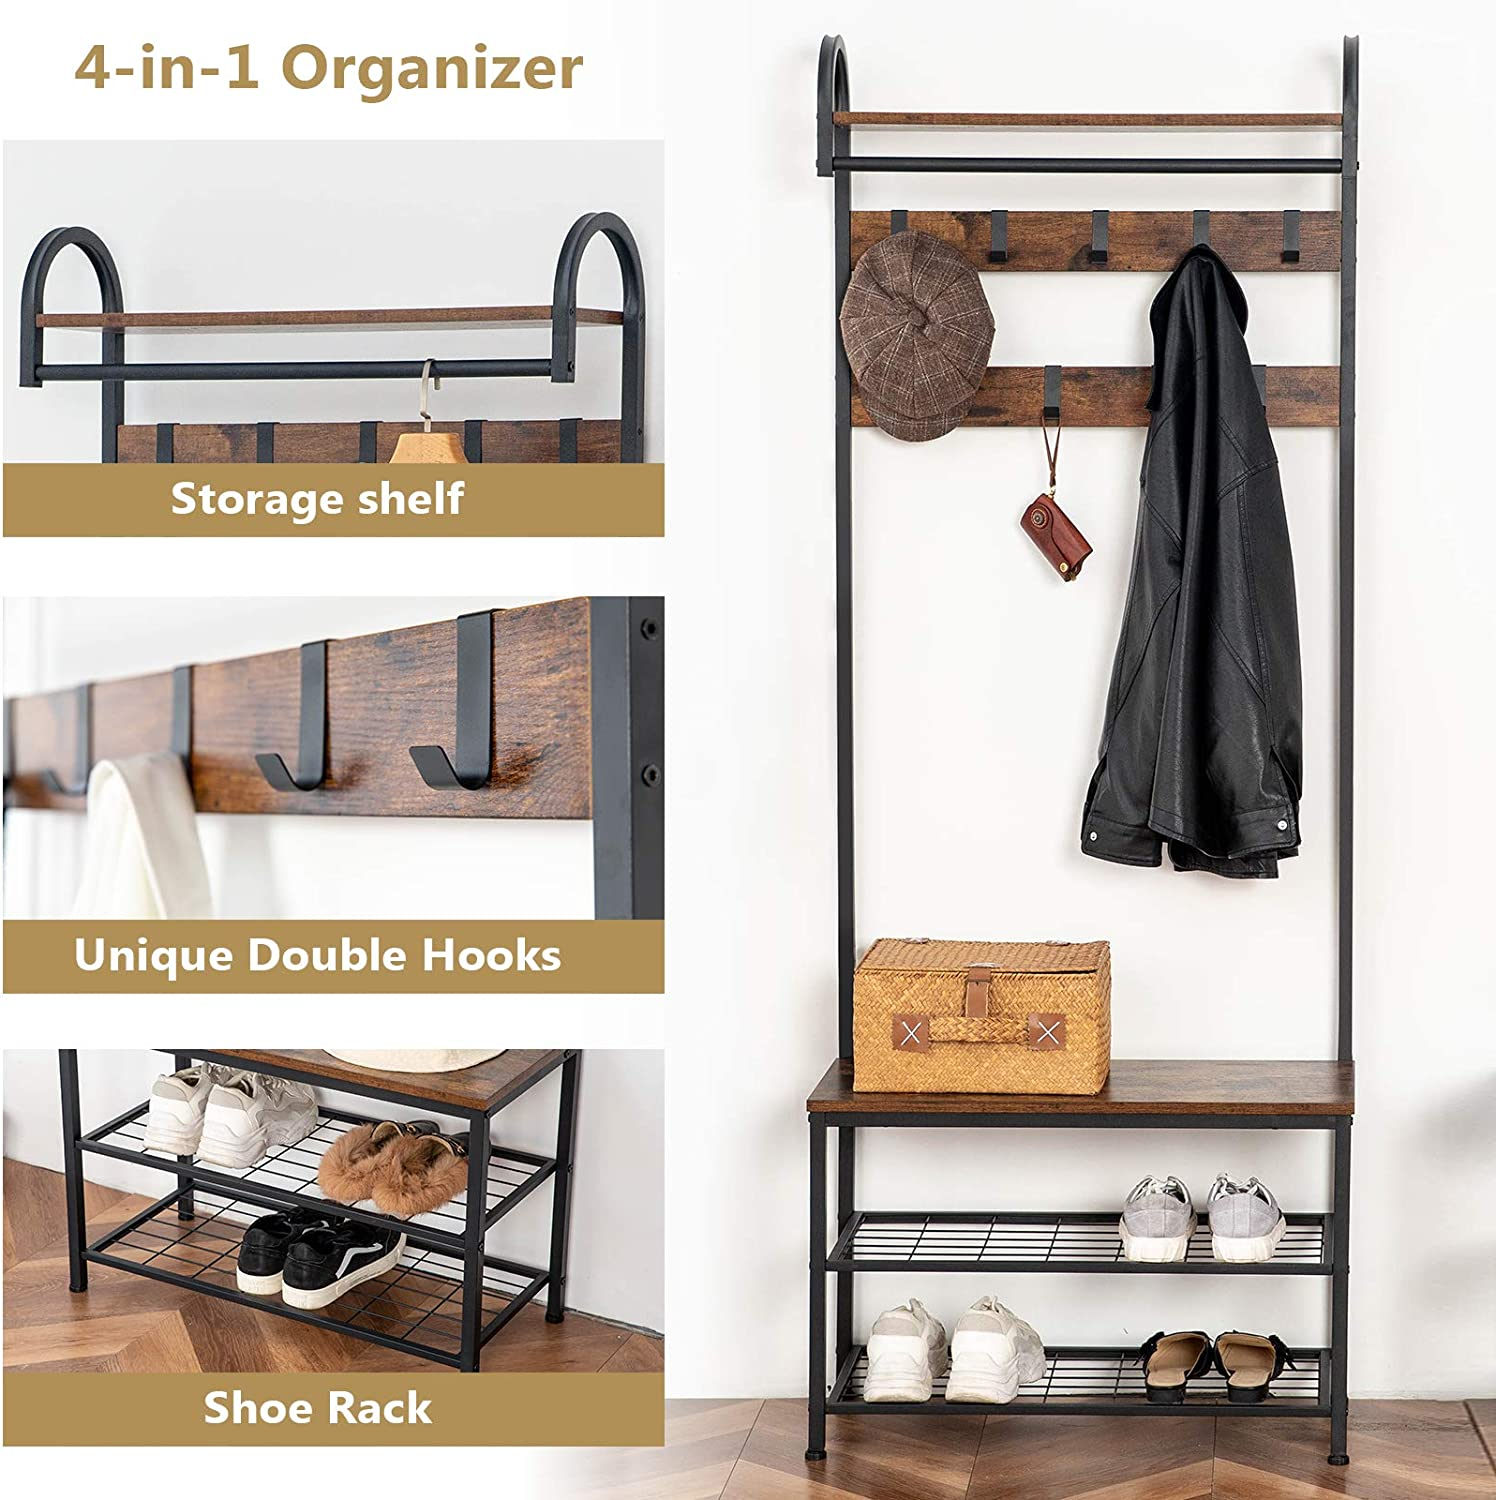 HOOBRO Coat Rack Shoe Bench, Industrial Hall Tree with Storage Shelf, Entryway Storage Organizer, 4 in 1 Design, Accent Furniture with Metal Frame, Easy Assembly, Rustic Brown BF13MT01: Home Improvement